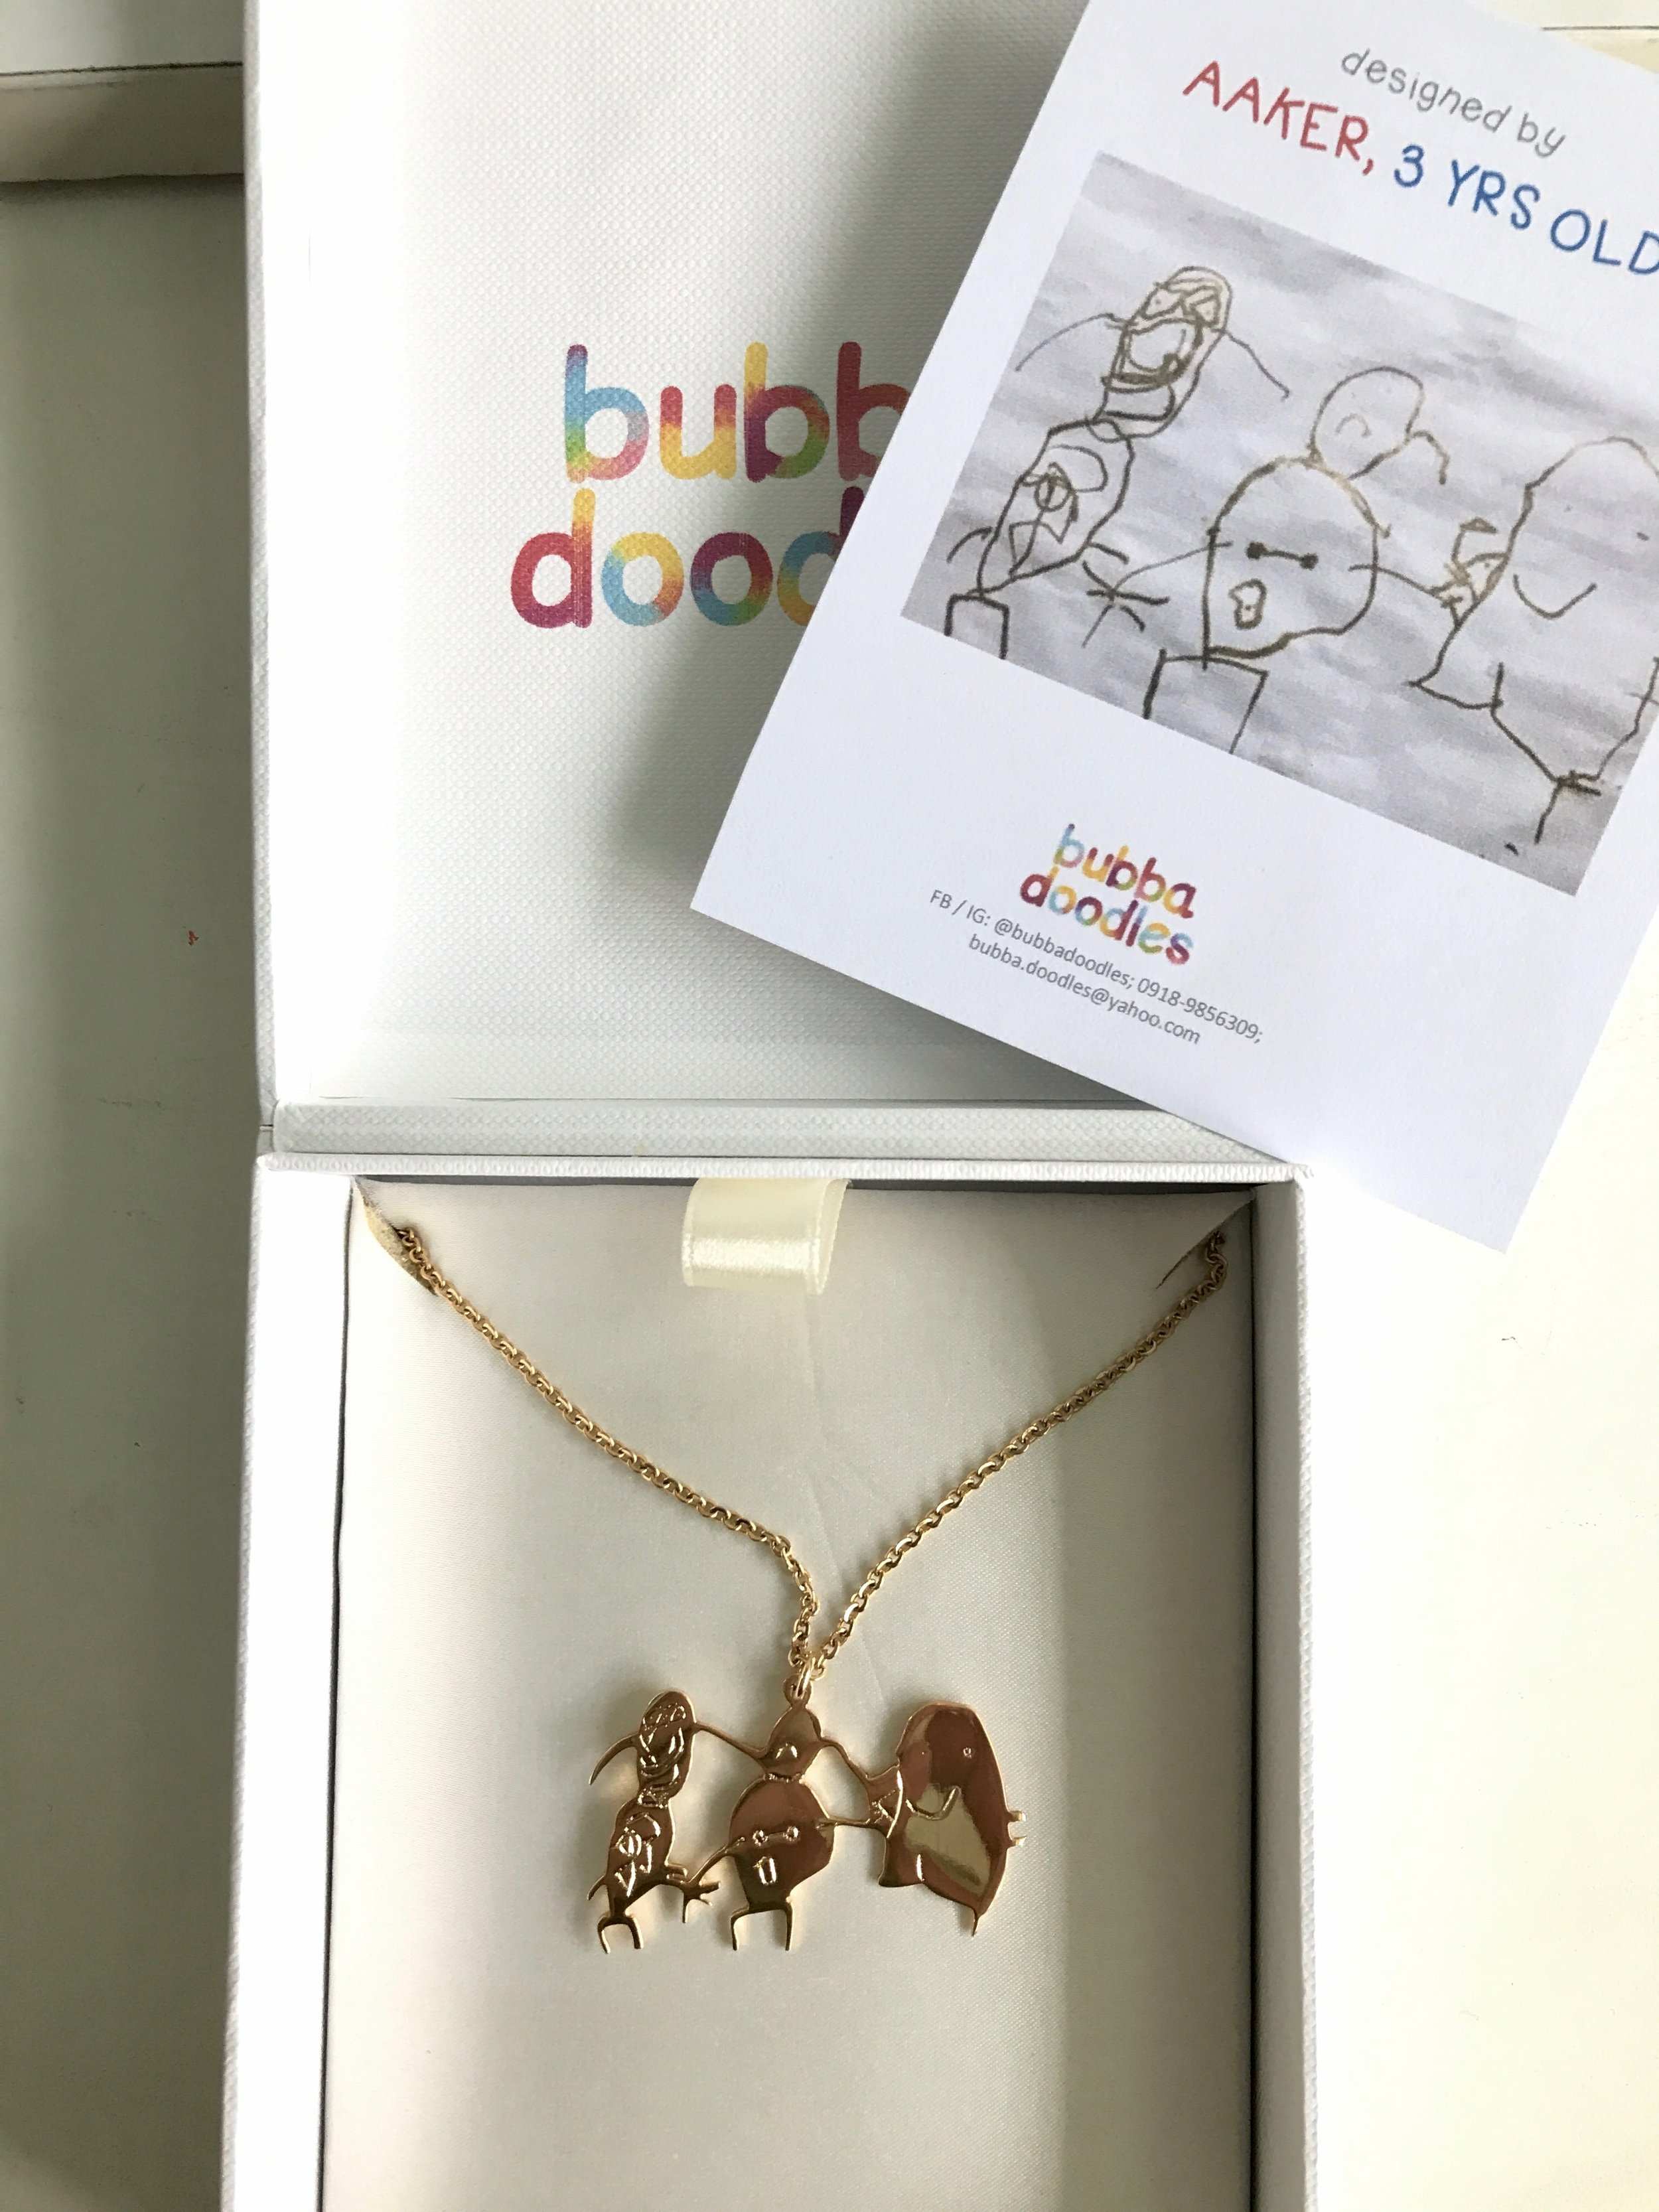 Bubba Doodles - Turn your kids art into wearable pieces! Aaker drew this when he was 3 years old and it is such a treasure to wear around my neck now.